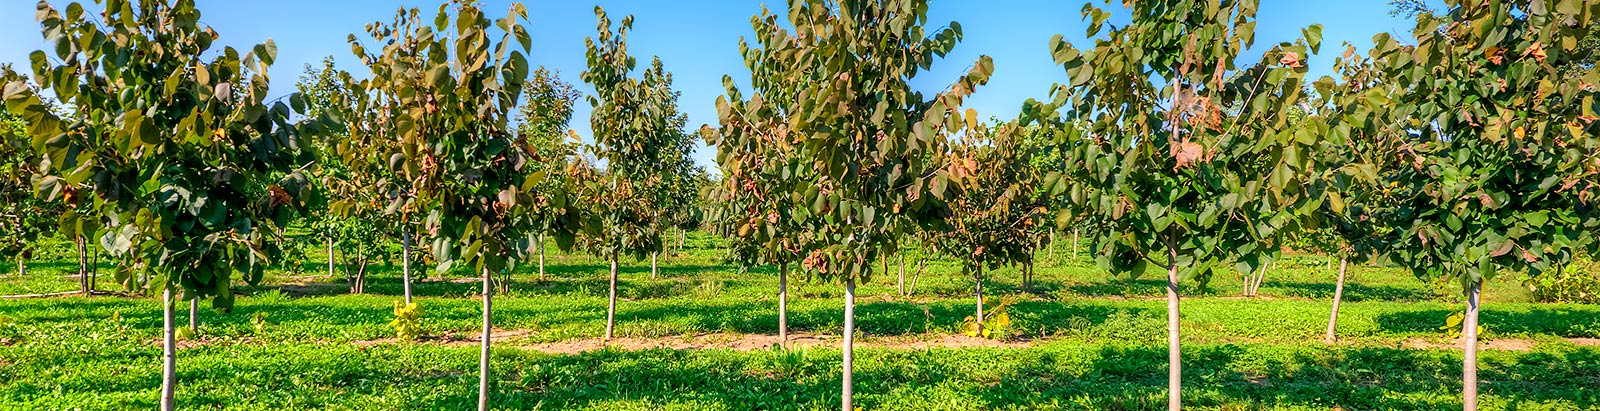 Chicagoland Wholesale Trees